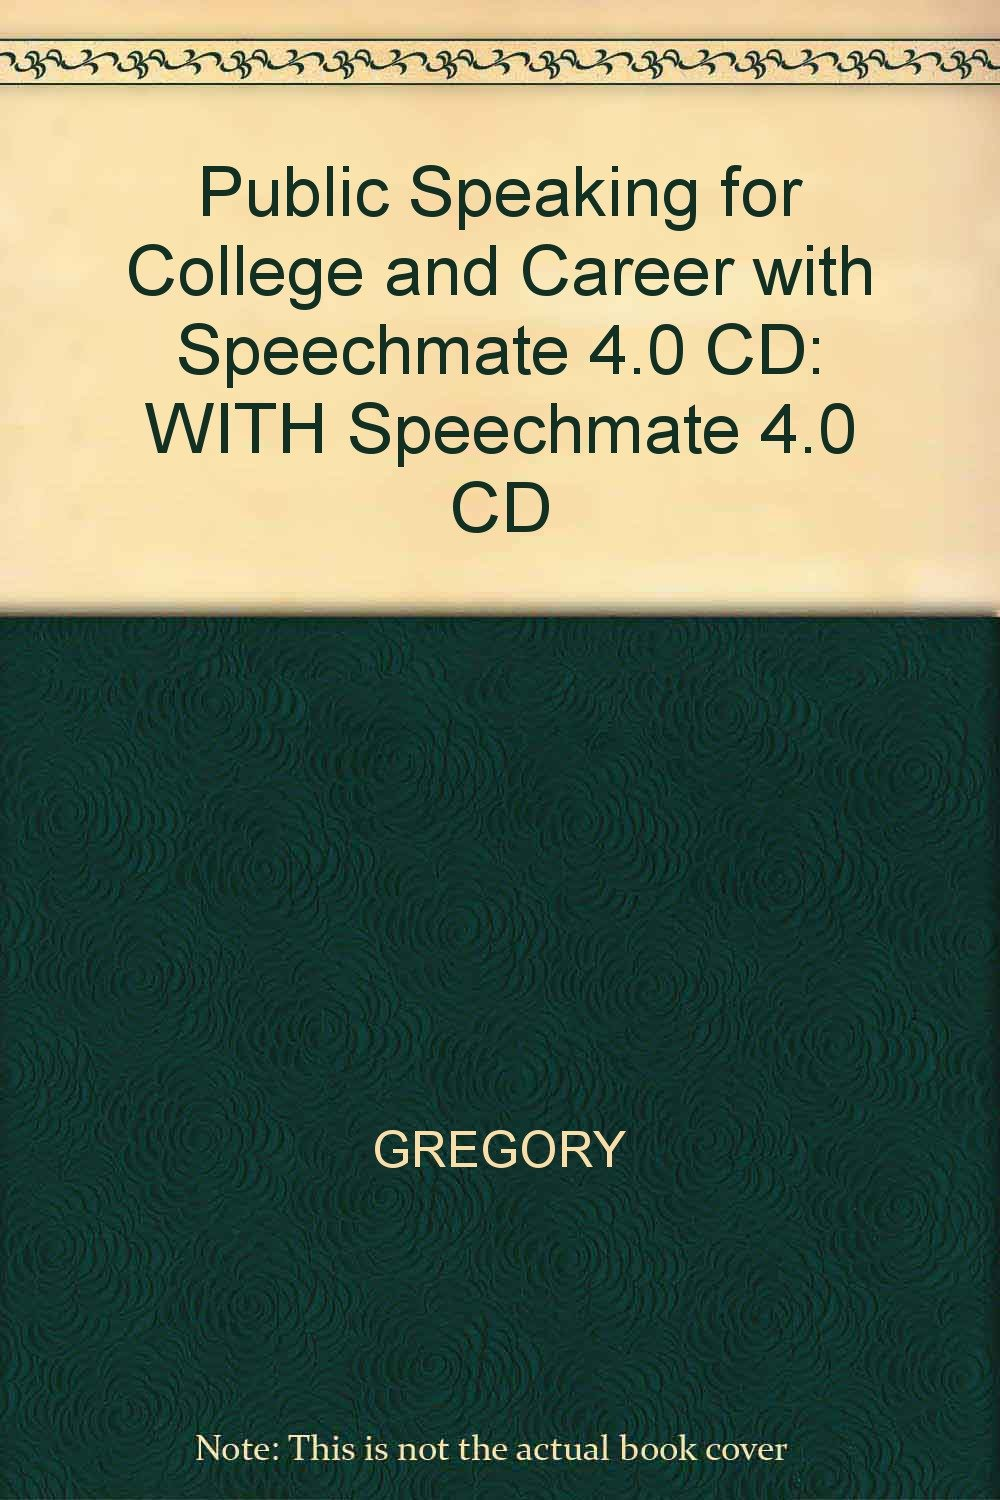 Download Public Speaking for College and Career: WITH Speechmate 4.0 CD PDF